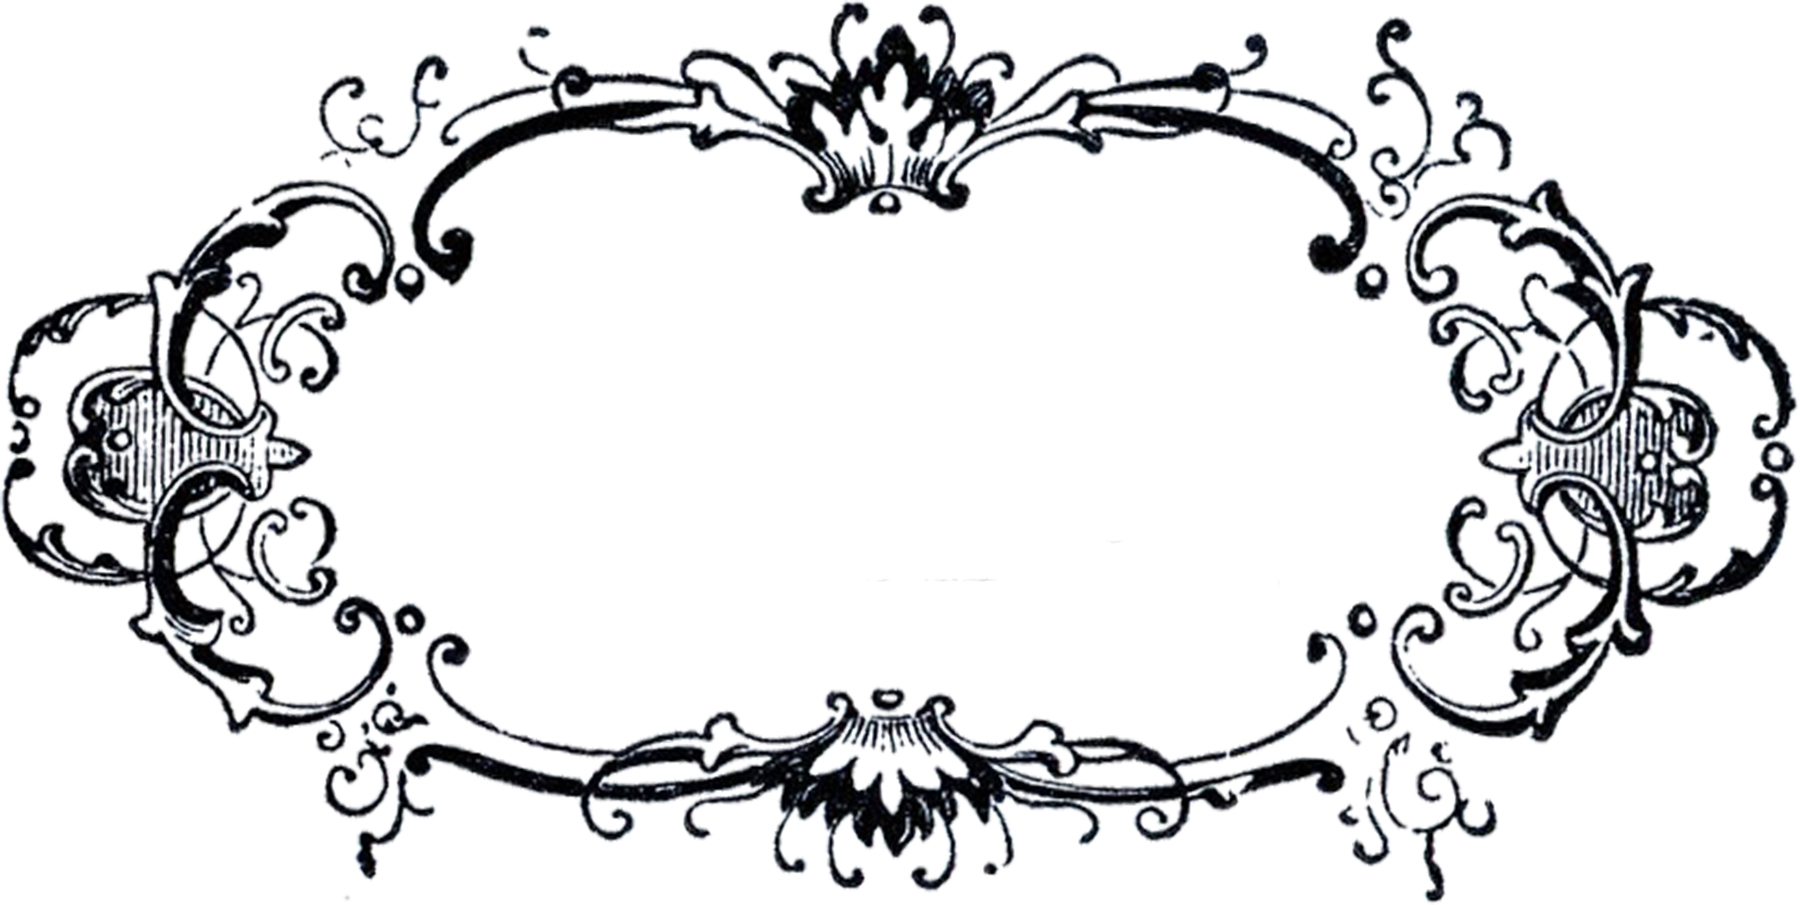 Fancy Border Frame Clipart | Free download best Fancy Border Frame ...